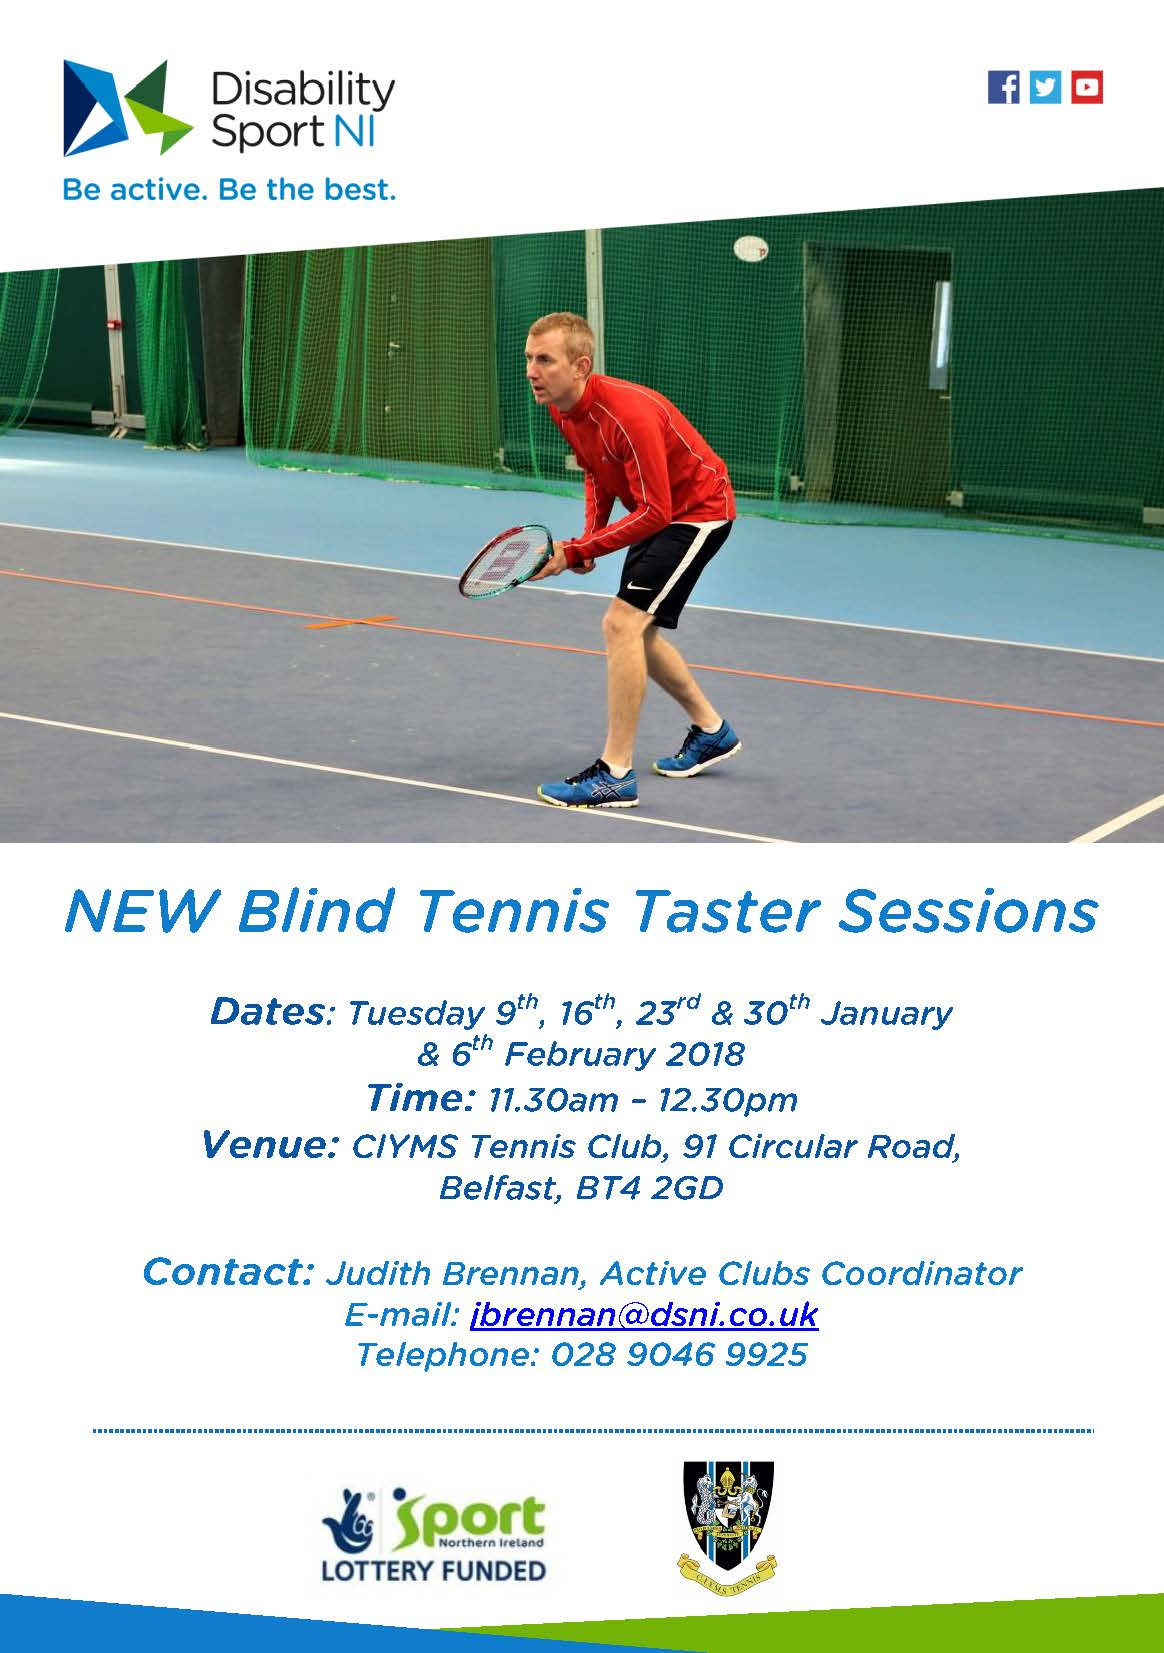 CIYMS Blind Tennis Taster Sessions flyer. Available in other formats upon request